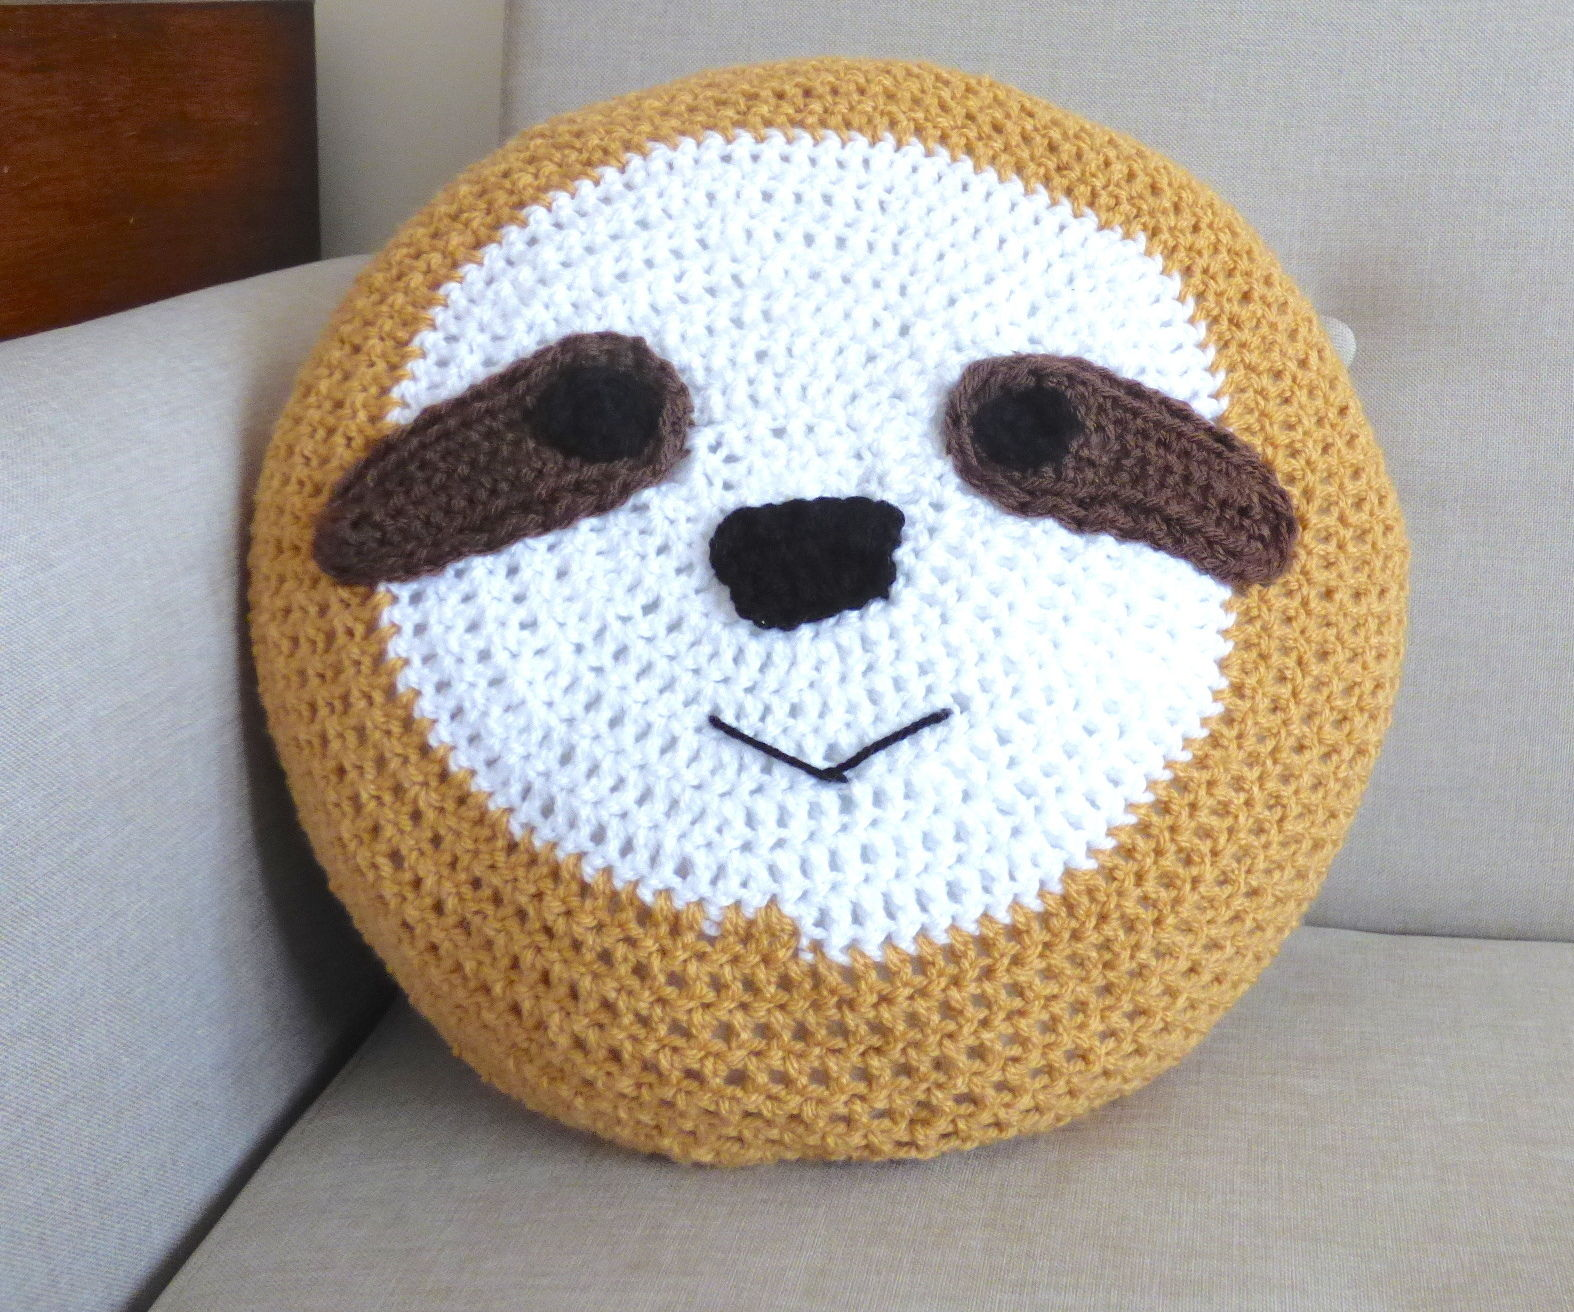 Crochet a Huggable Sloth Cushion